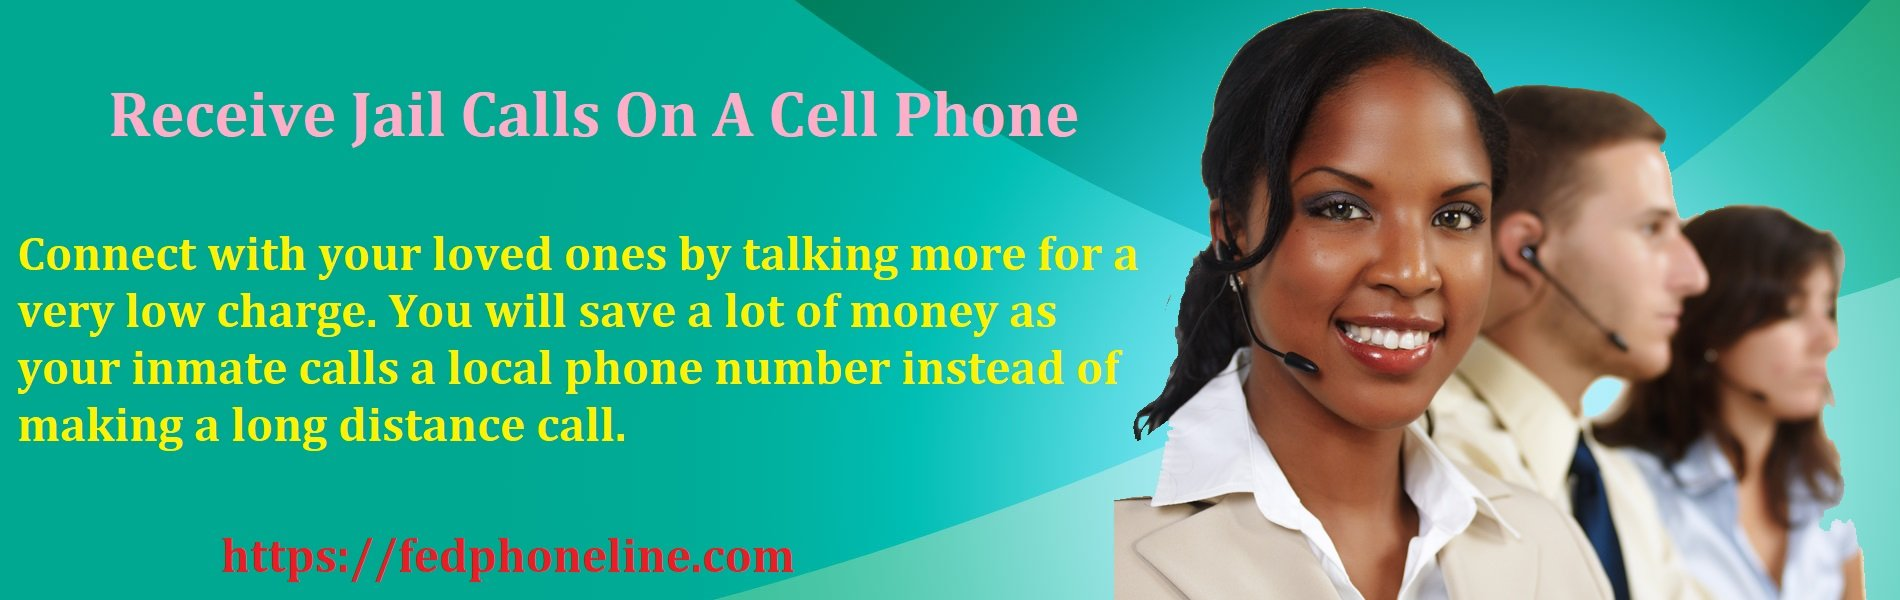 HOW TO RECEIVE JAIL CALLS ON A CELL PHONE